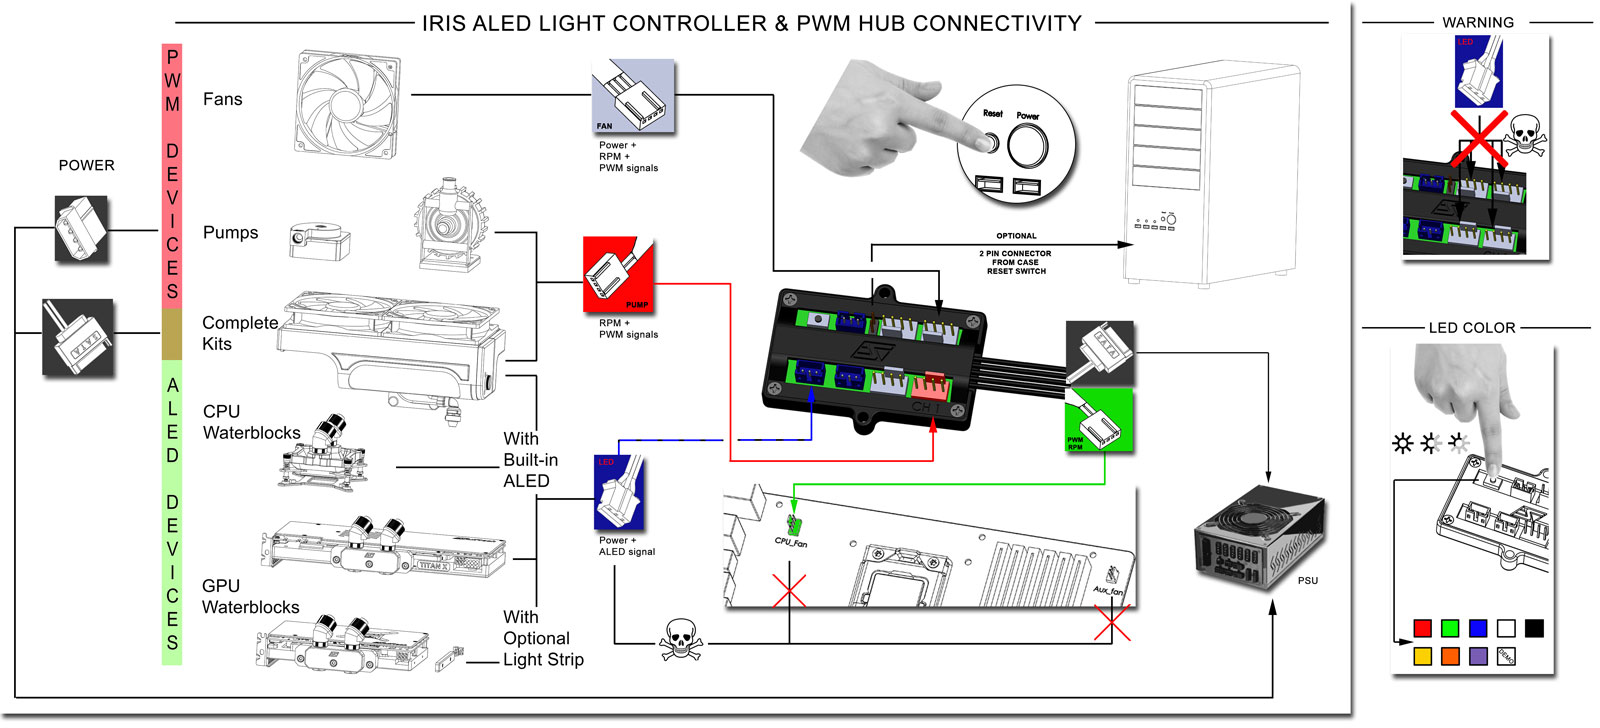 Iris Controller Series Rouchon Industries Inc Dba Swiftech Pc Pwm Wiring Diagram Price Sign Important Note The Skulls Depicted In Above Schematics Symbolize Fact That Users Should Never Attempt To Connect 3 Pin Female Aled Connectors